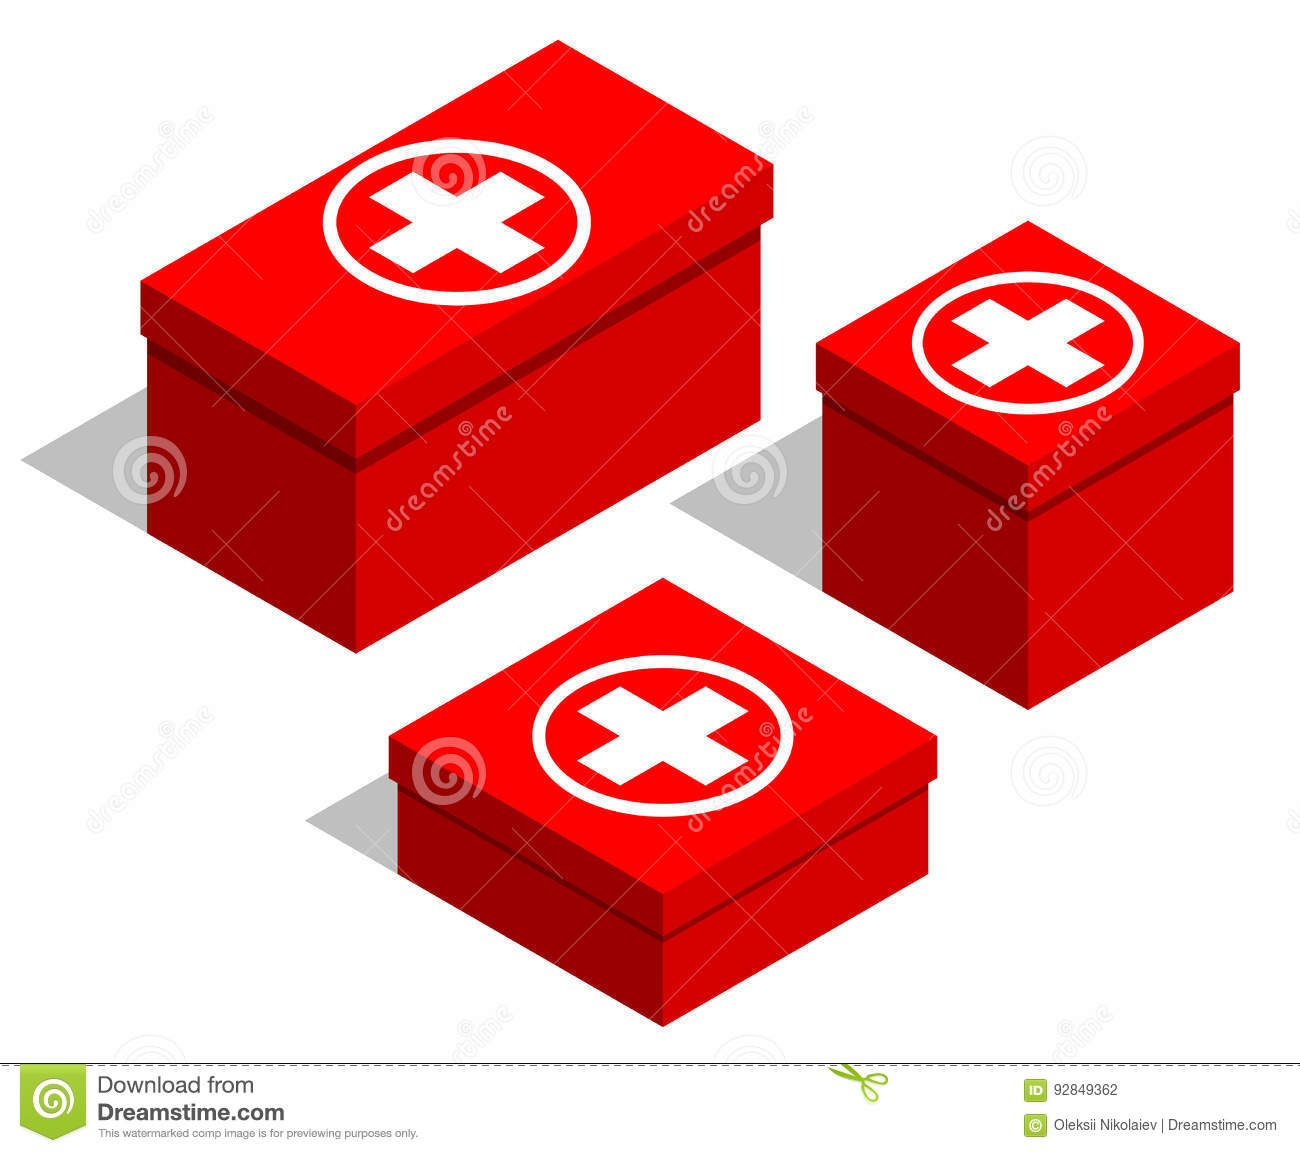 Medical first-aid kits. Set of red boxes with a medical symbol on the lid. Isolated objects on white background